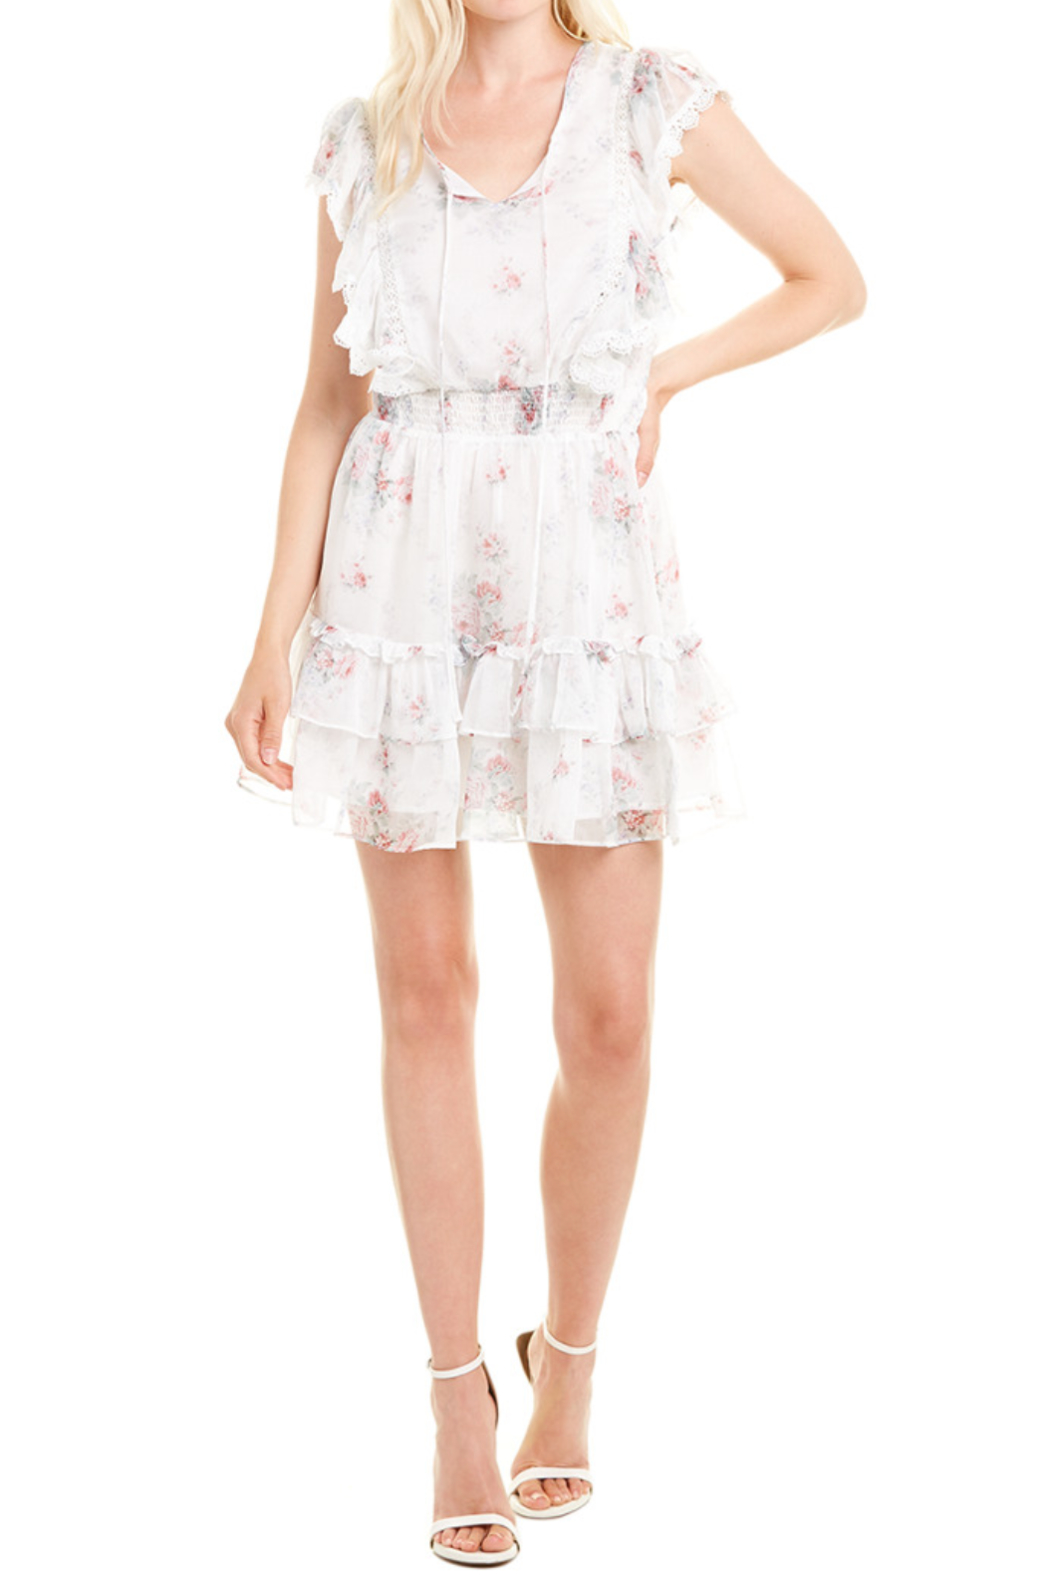 Stellah Floral Printed Ruffle Dress - Front Full Image